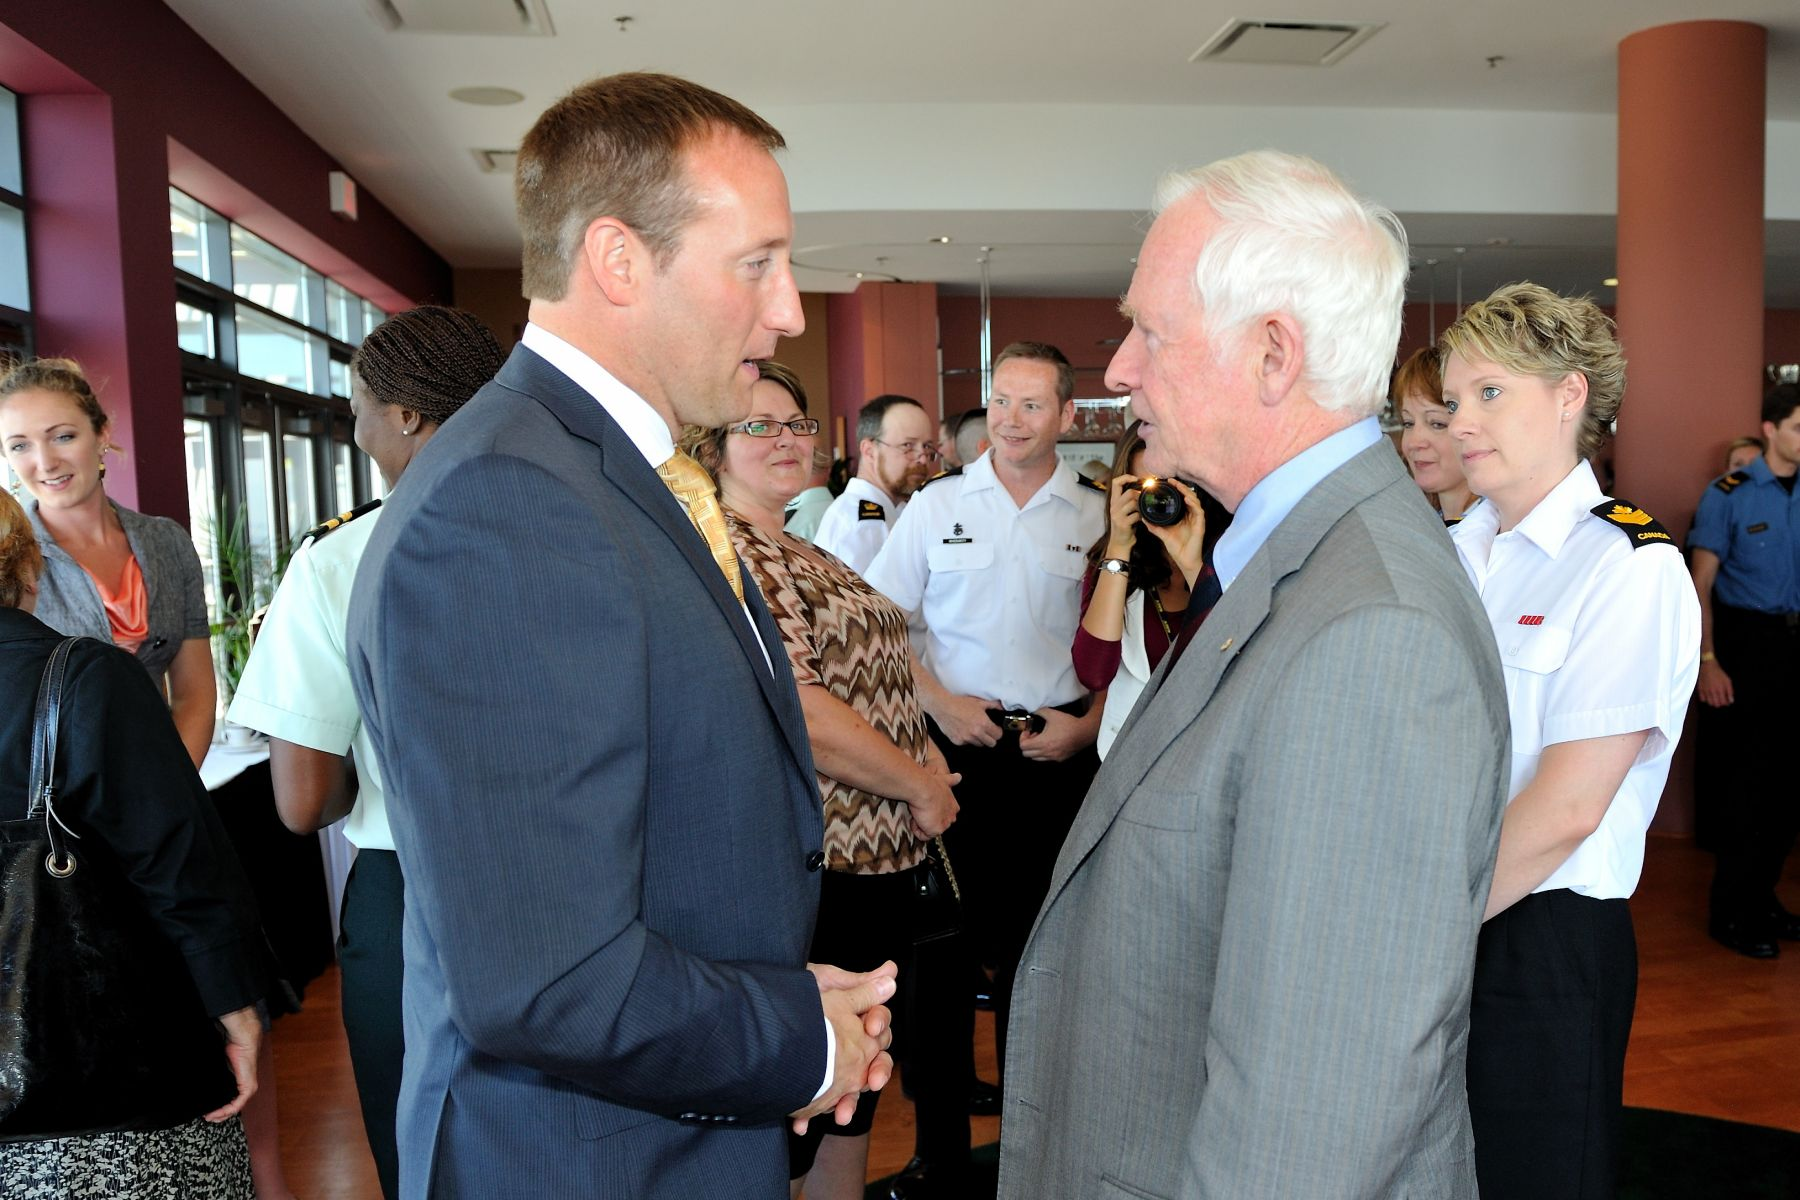 During a luncheon that followed the briefing, His Excellency had a chance to speak with the Honourable Peter MacKay, Minister of National Defence, also in attendance.